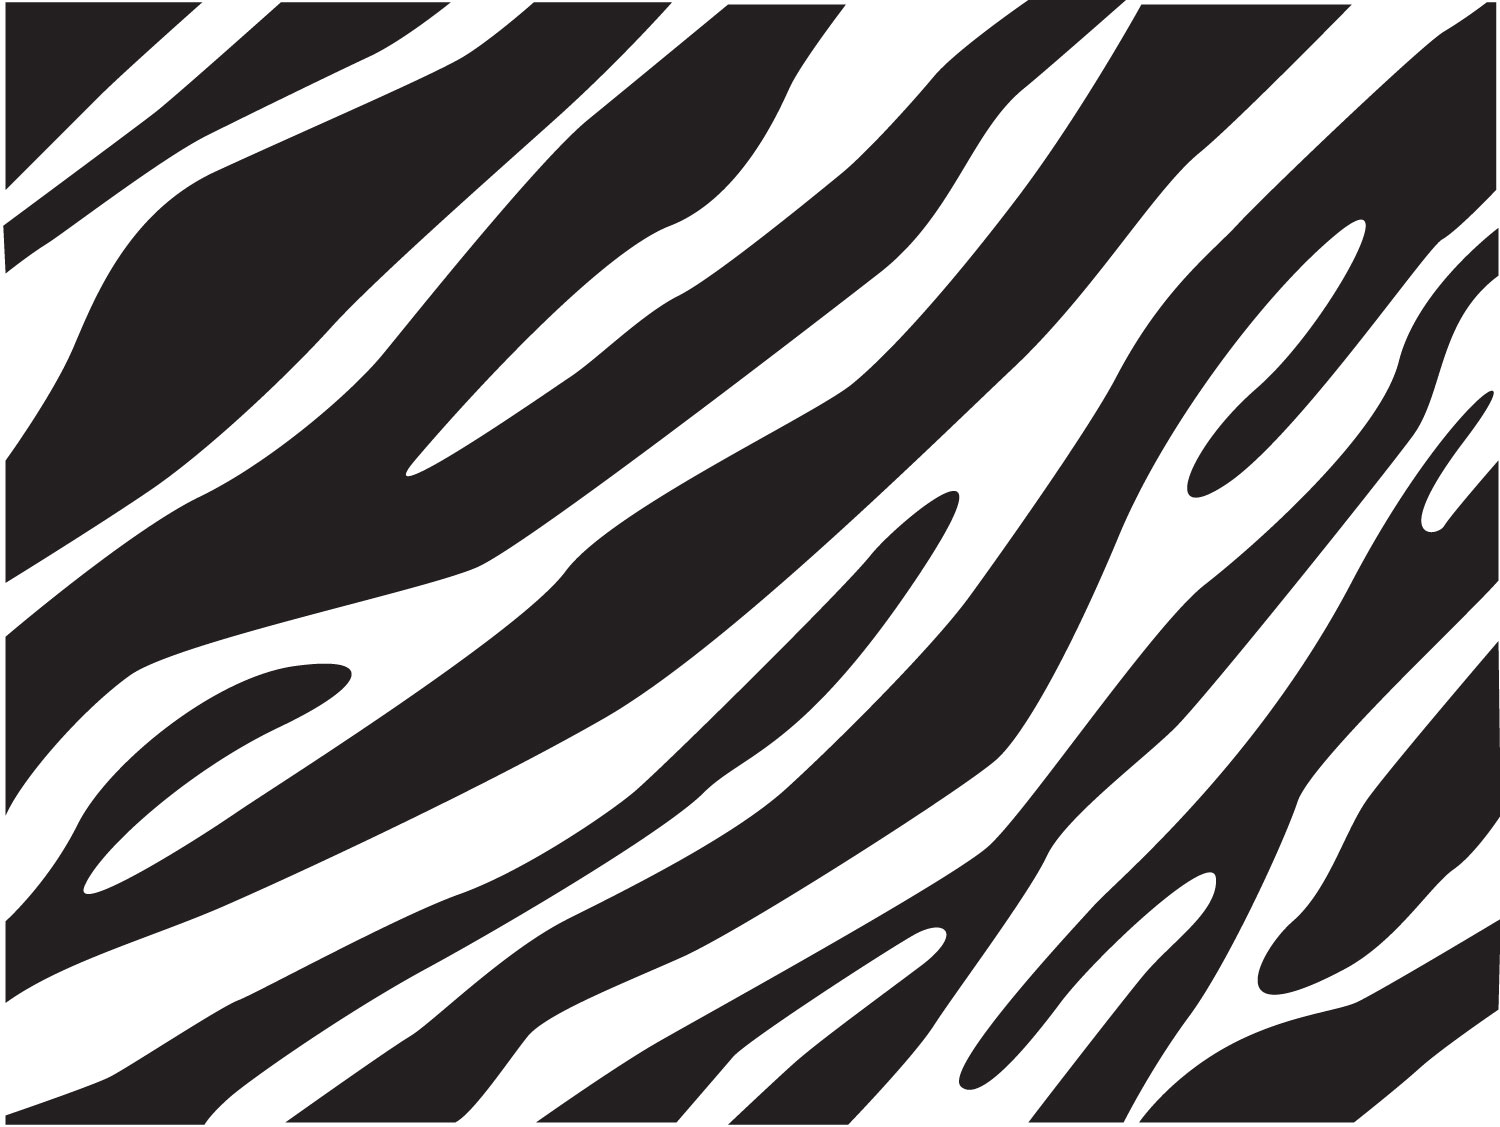 Zebra Print Wallpaper #6874554-Zebra Print Wallpaper #6874554-15